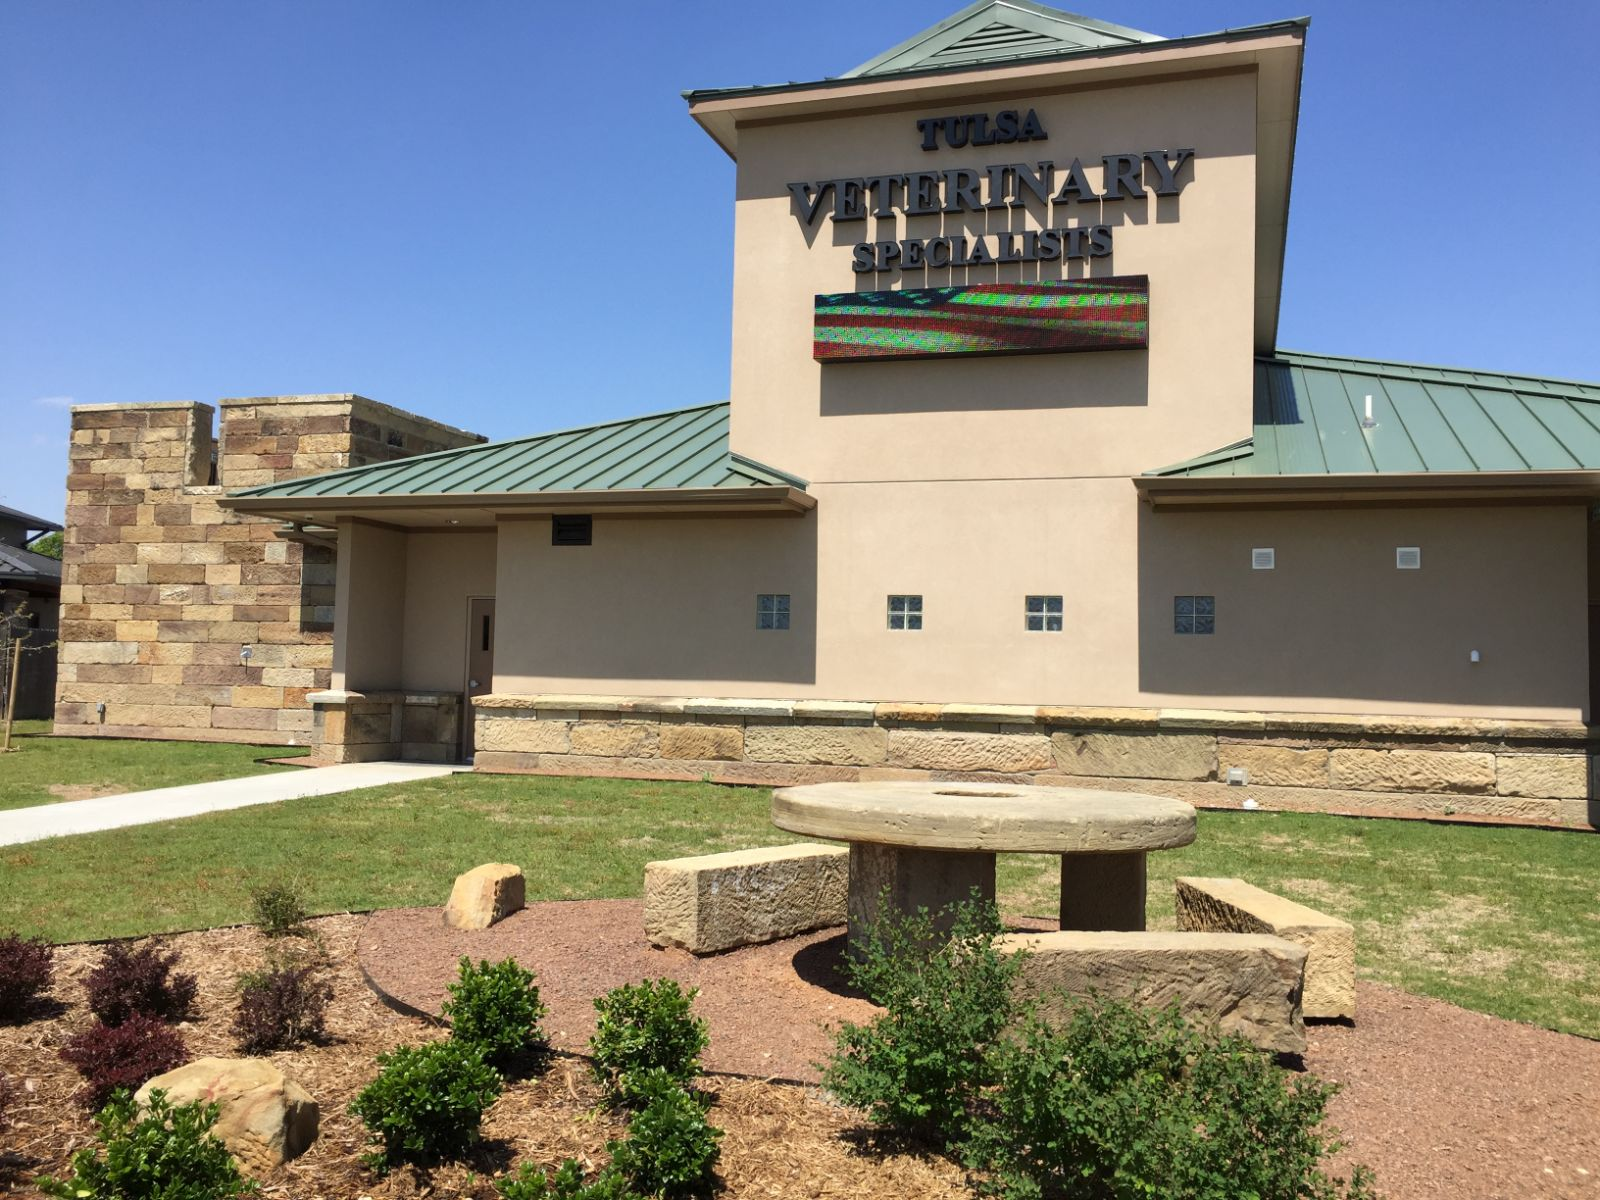 Tulsa Veterinary Specialists